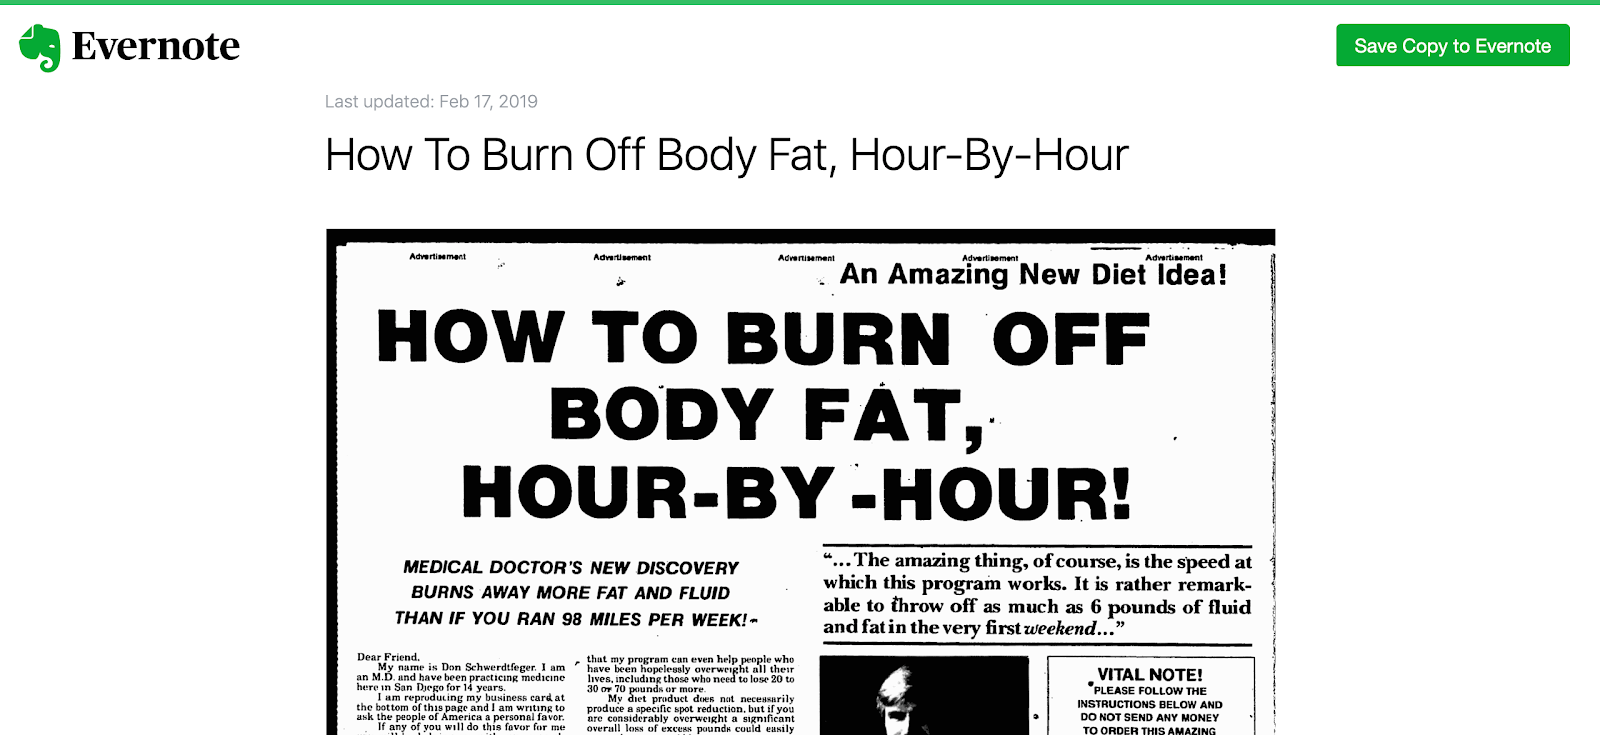 How to Burn Off Body Fat, Hour-by-Hour